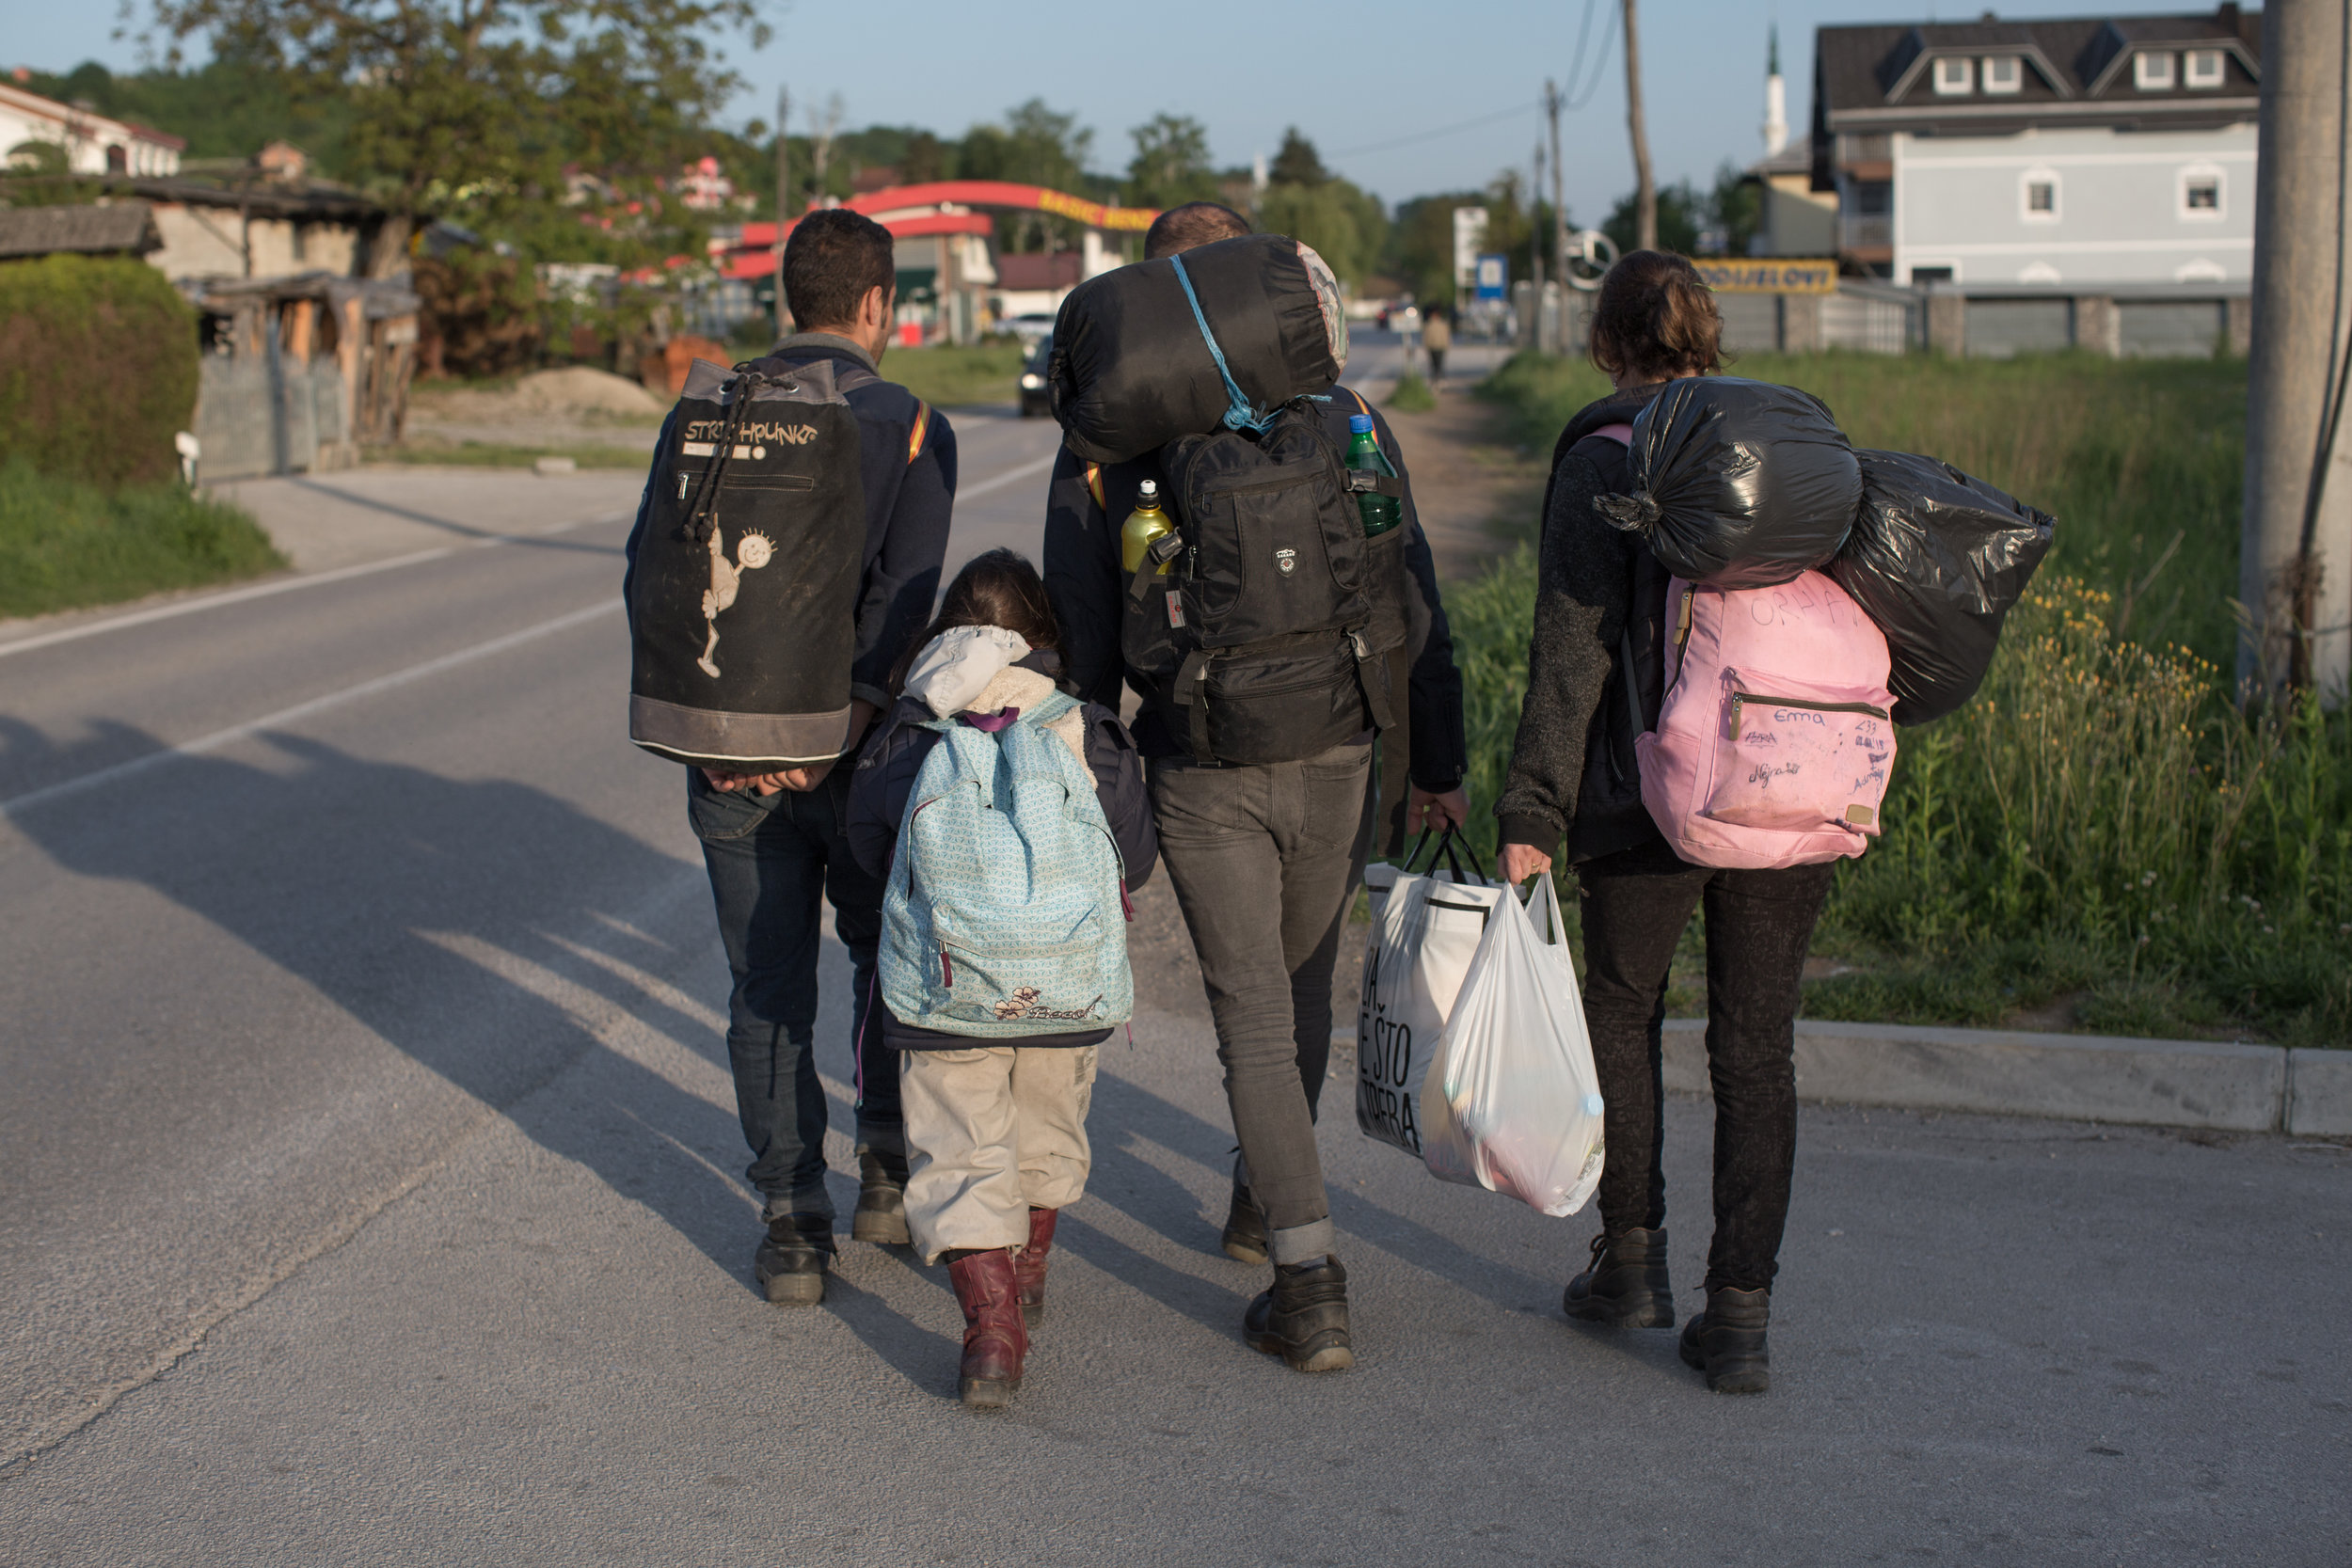 Migrants from Syria on their way to the migrant center Miral, Velika Kladuša, BiH.